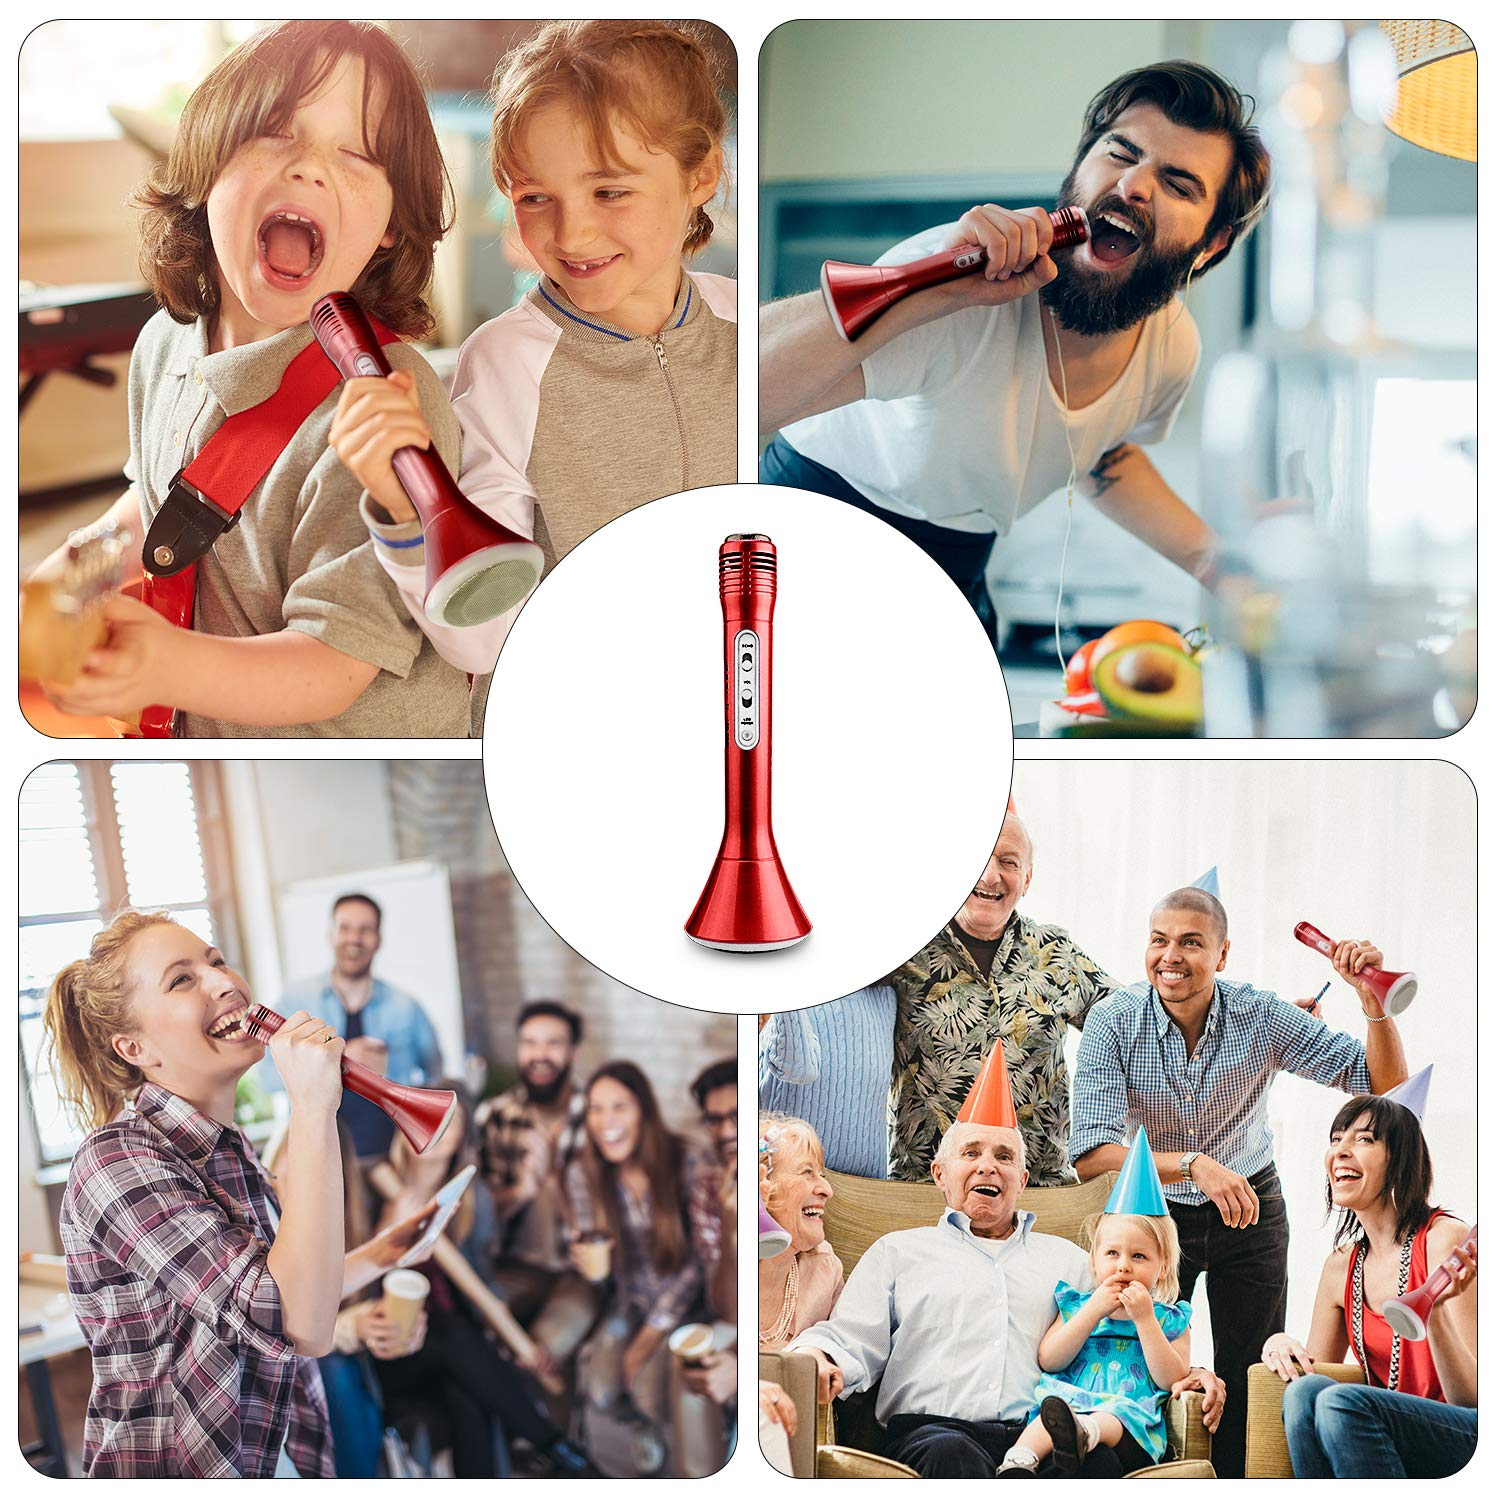 Microphone for Kids, Wireless Bluetooth Microphone with Bluetooth Speaker and Multi-color LED Lights Handheld Singing Machine Girls Boys Birthday Gift Compatible with PC/iPad/iPhone/Smartphone - (Red) by WOSTOO (Image #6)